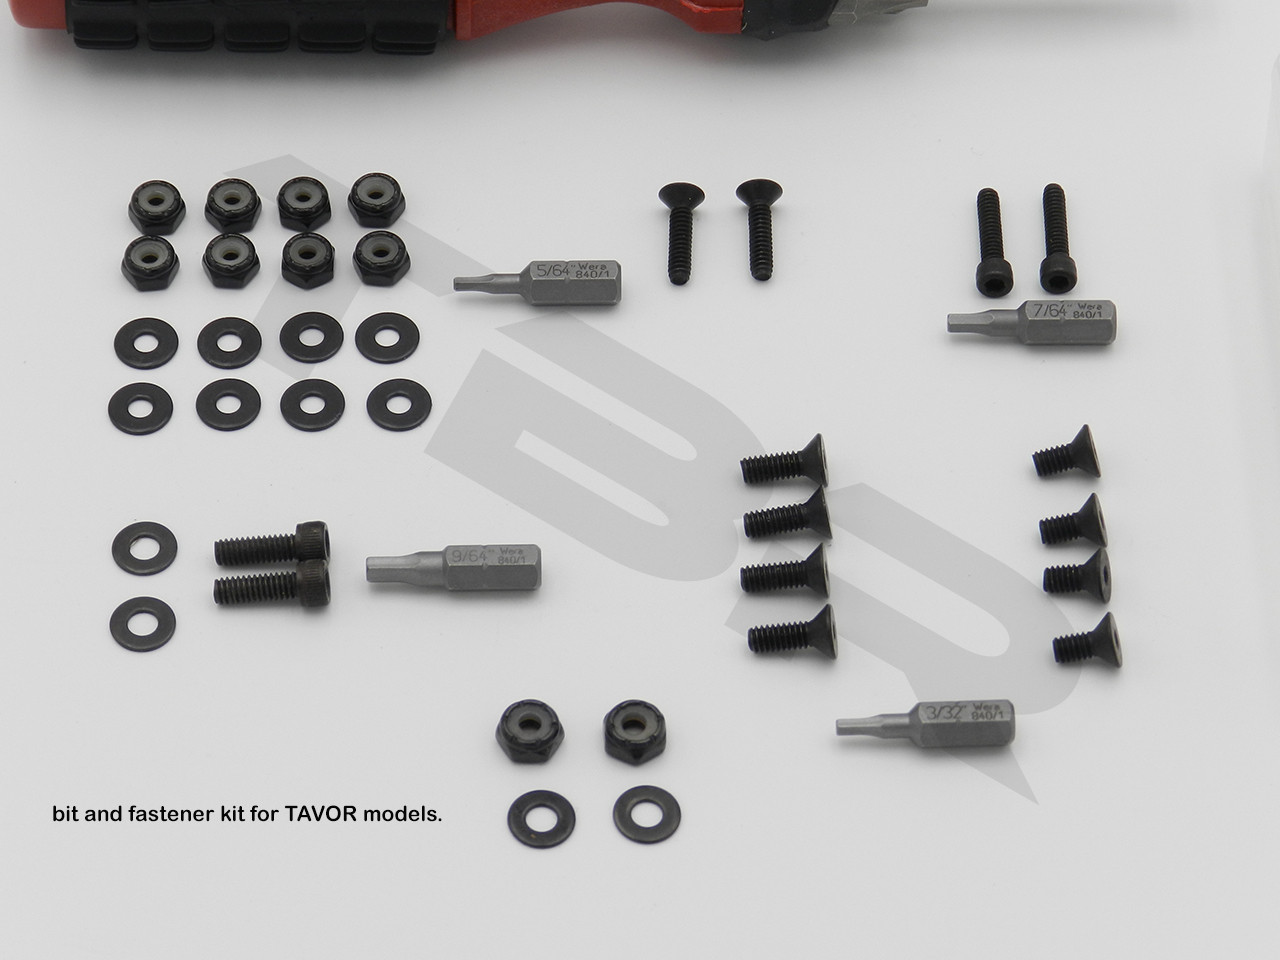 bit and fastener kit for TAVOR models